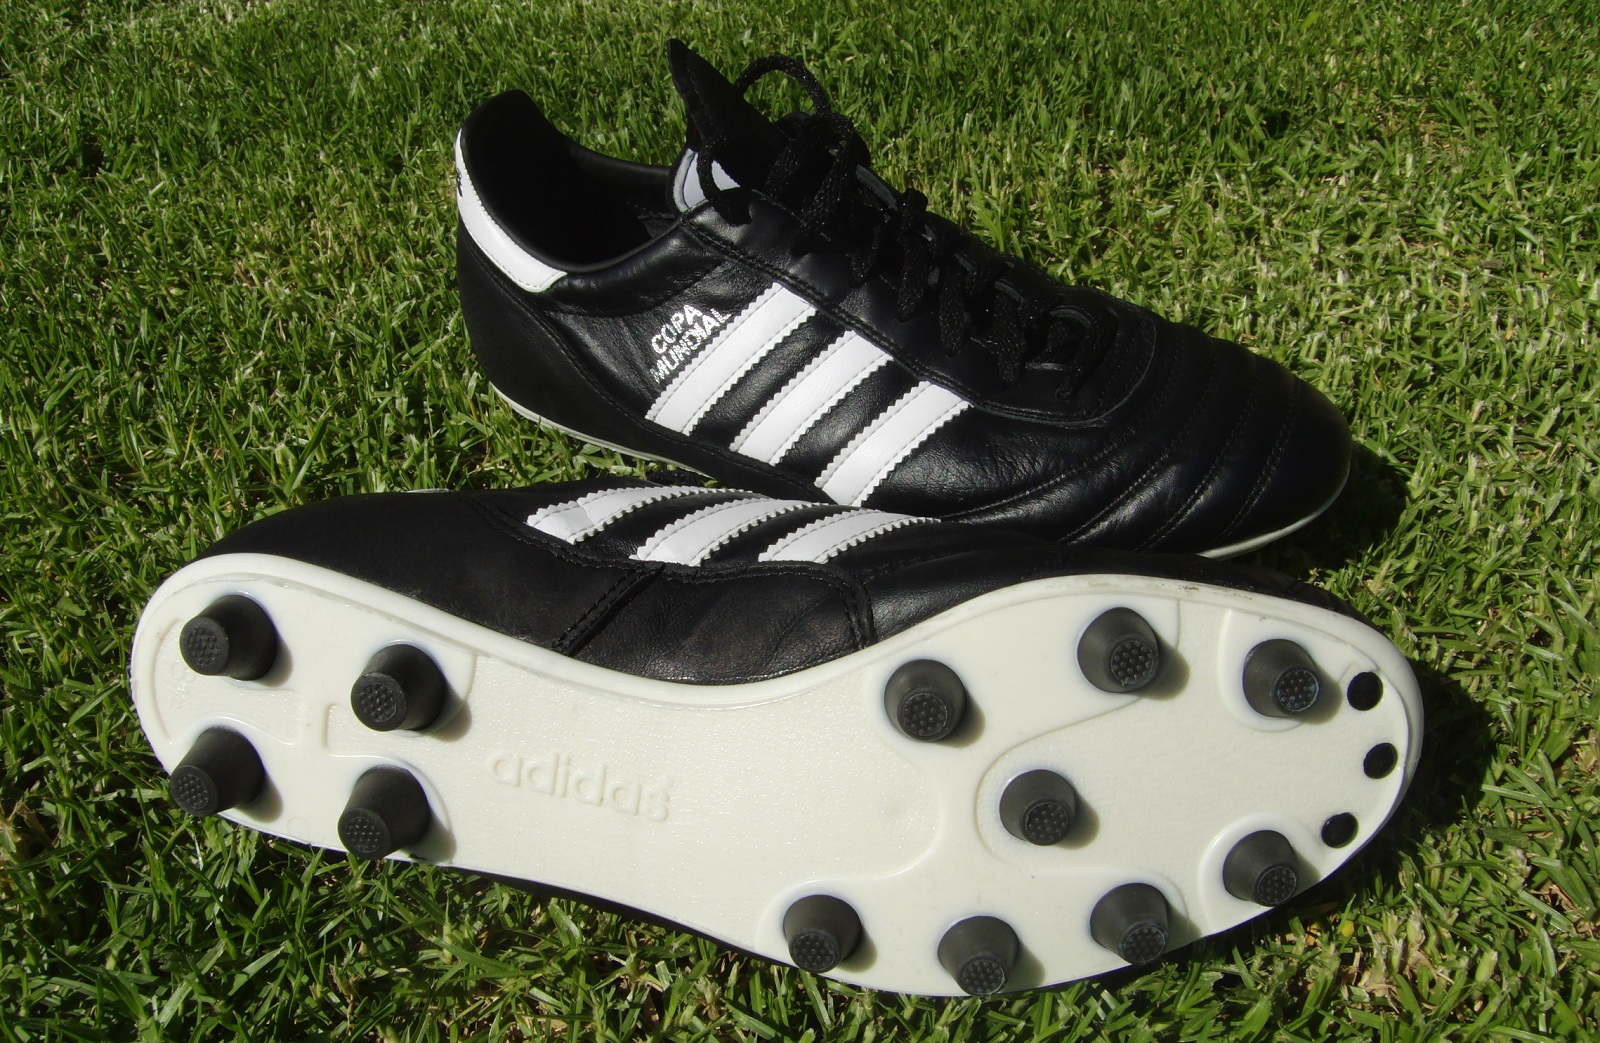 reputable site 42149 43055 Adidas Copa Mundial Review   Soccer Cleats 101